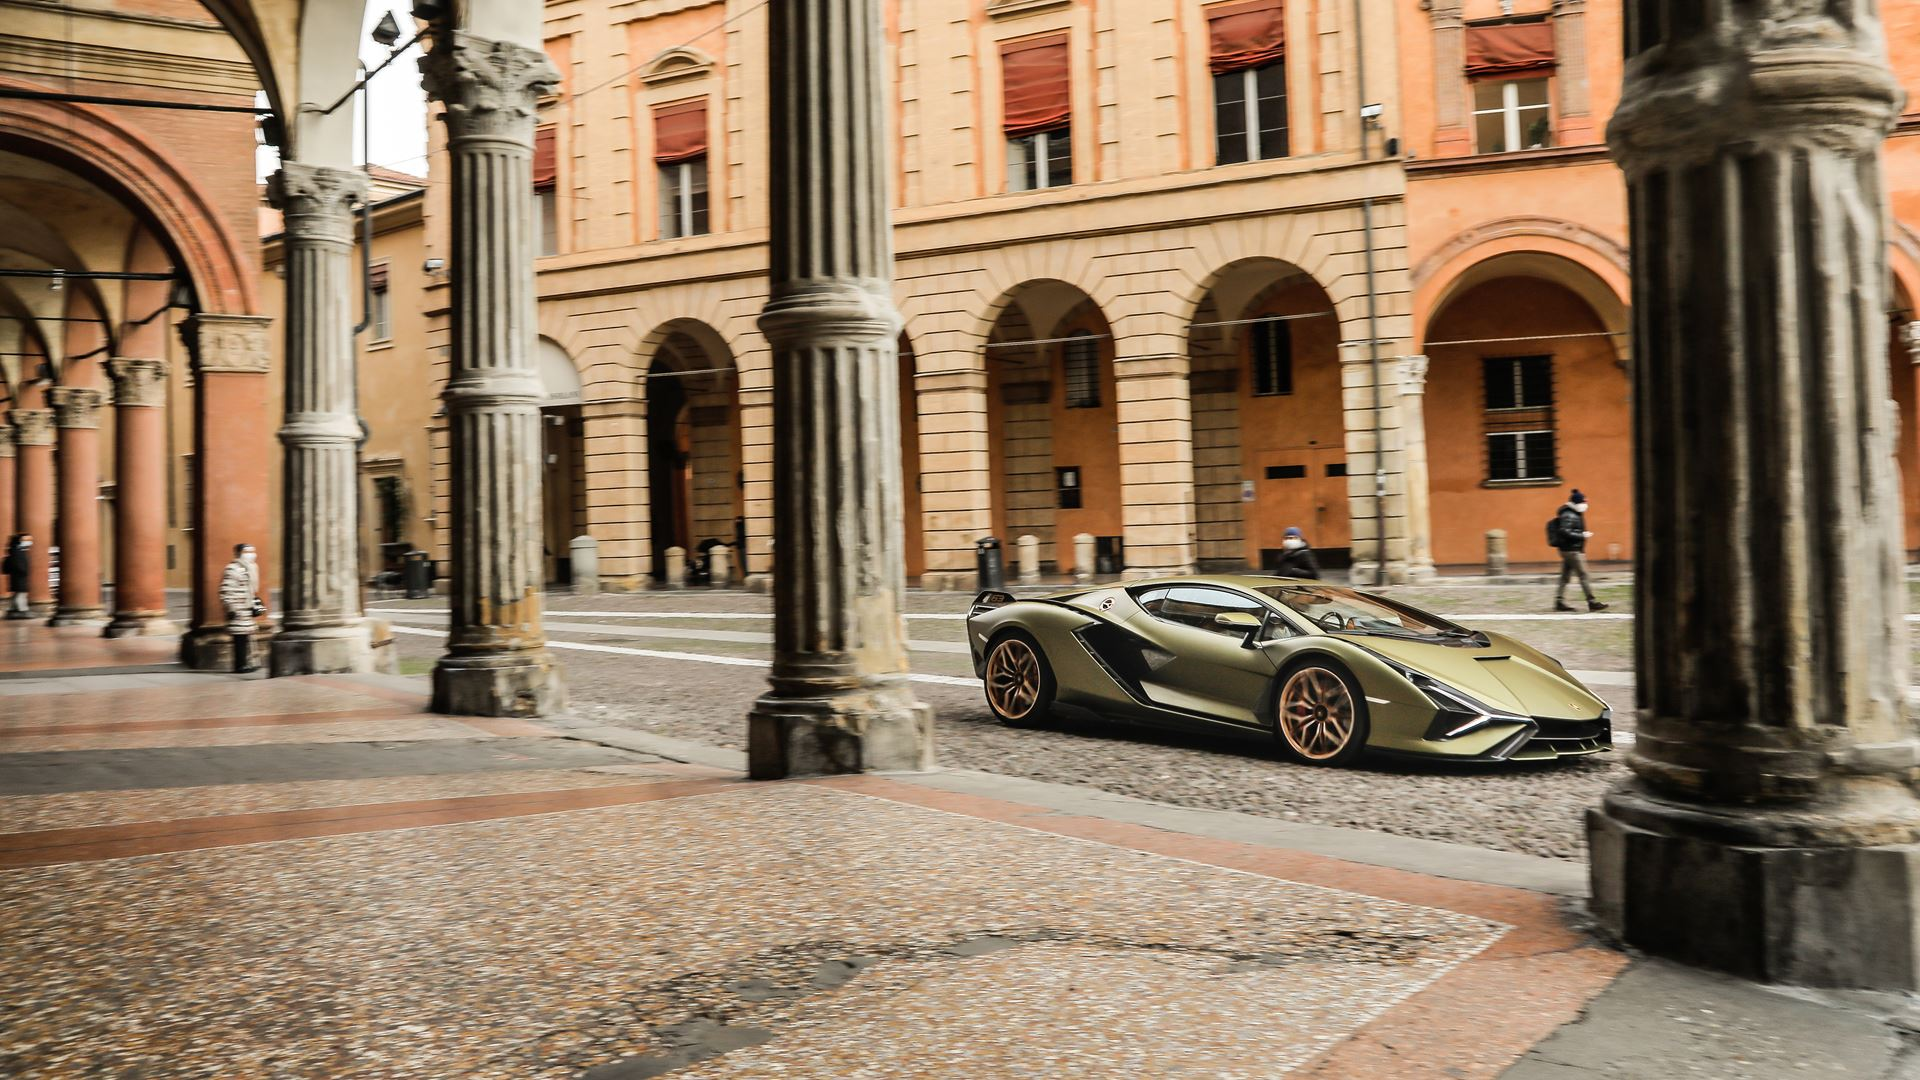 Lamborghini Sián pays homage to the porticoes of Bologna. Following the UNESCO designation, the super sports car from Sant'Agata travels the streets of Bologna's porticoes - Image 8